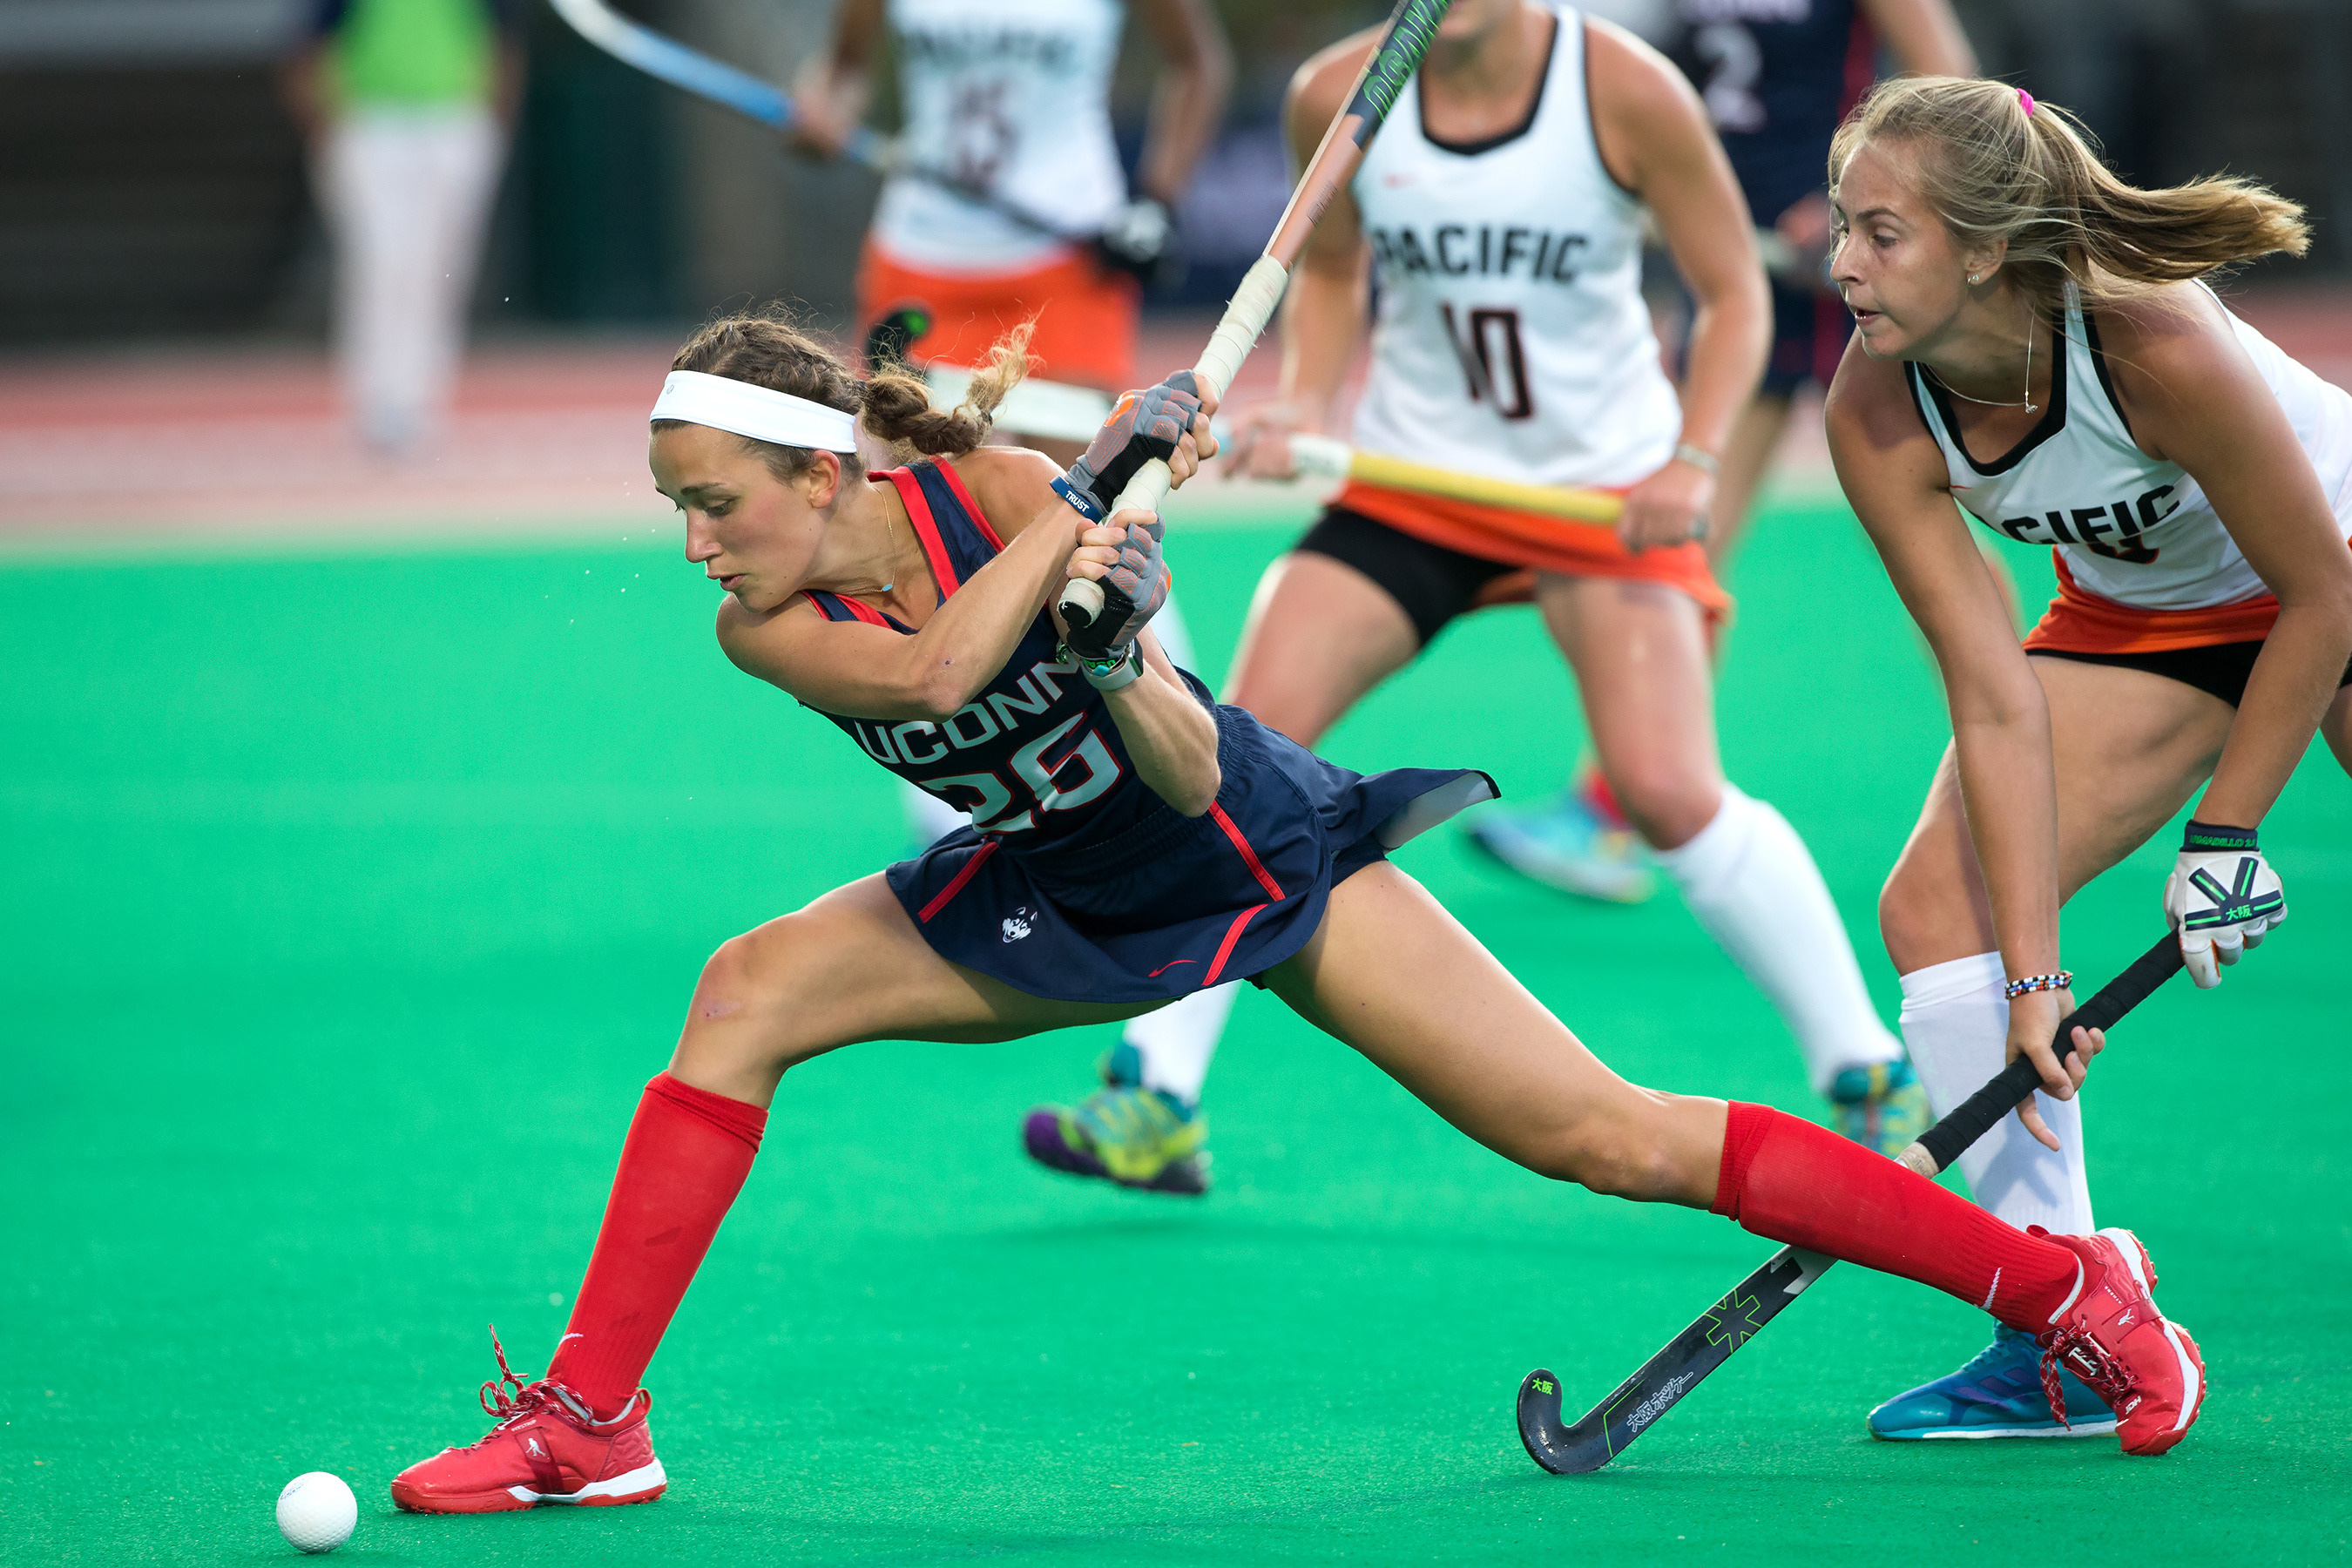 Charlotte Veitner during a game against Pacific. (UConn Athletic Communications Photo)